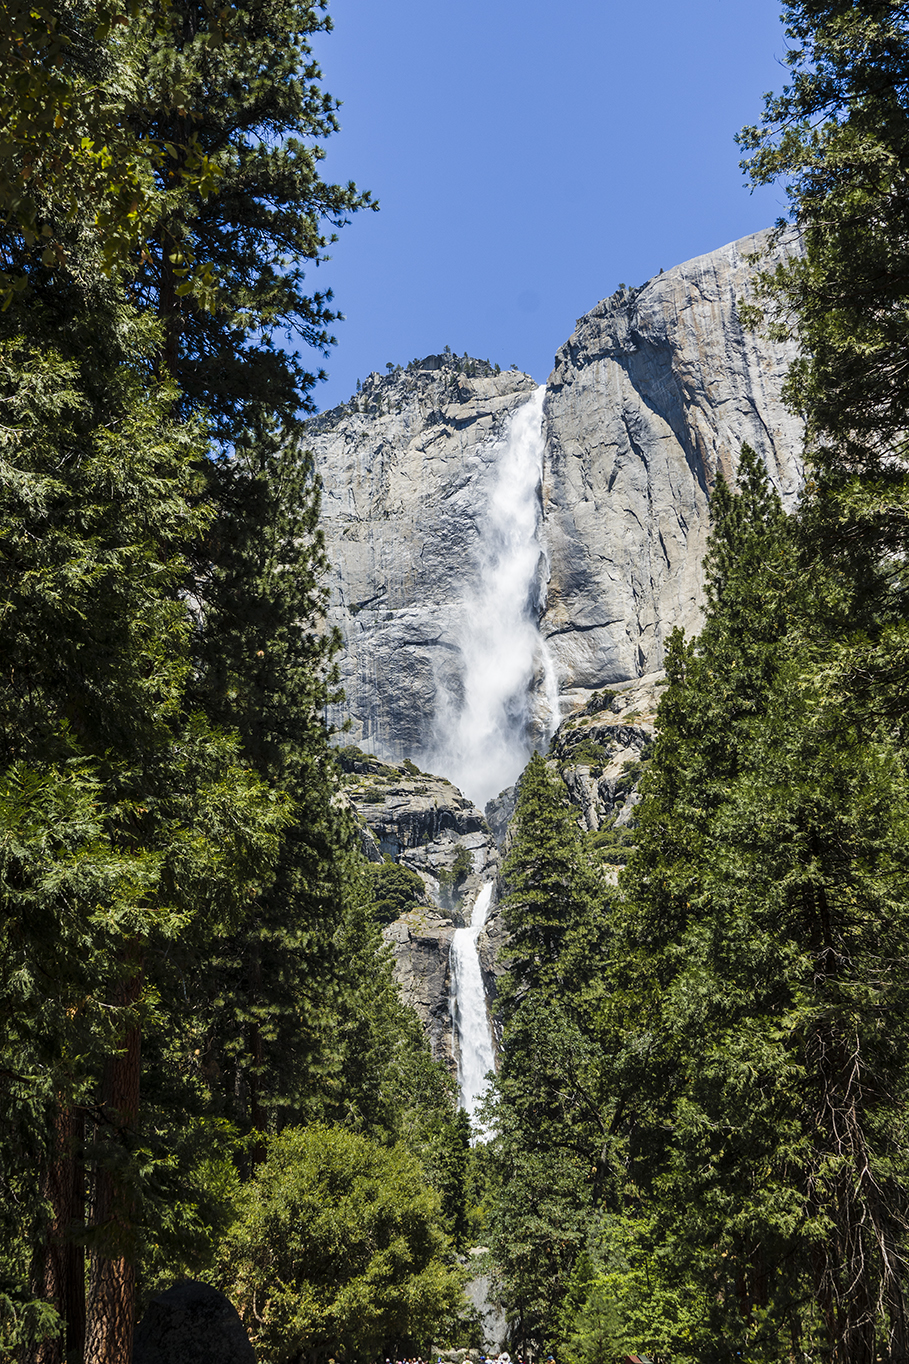 Lower Yosemite Falls in Yosemite valley California